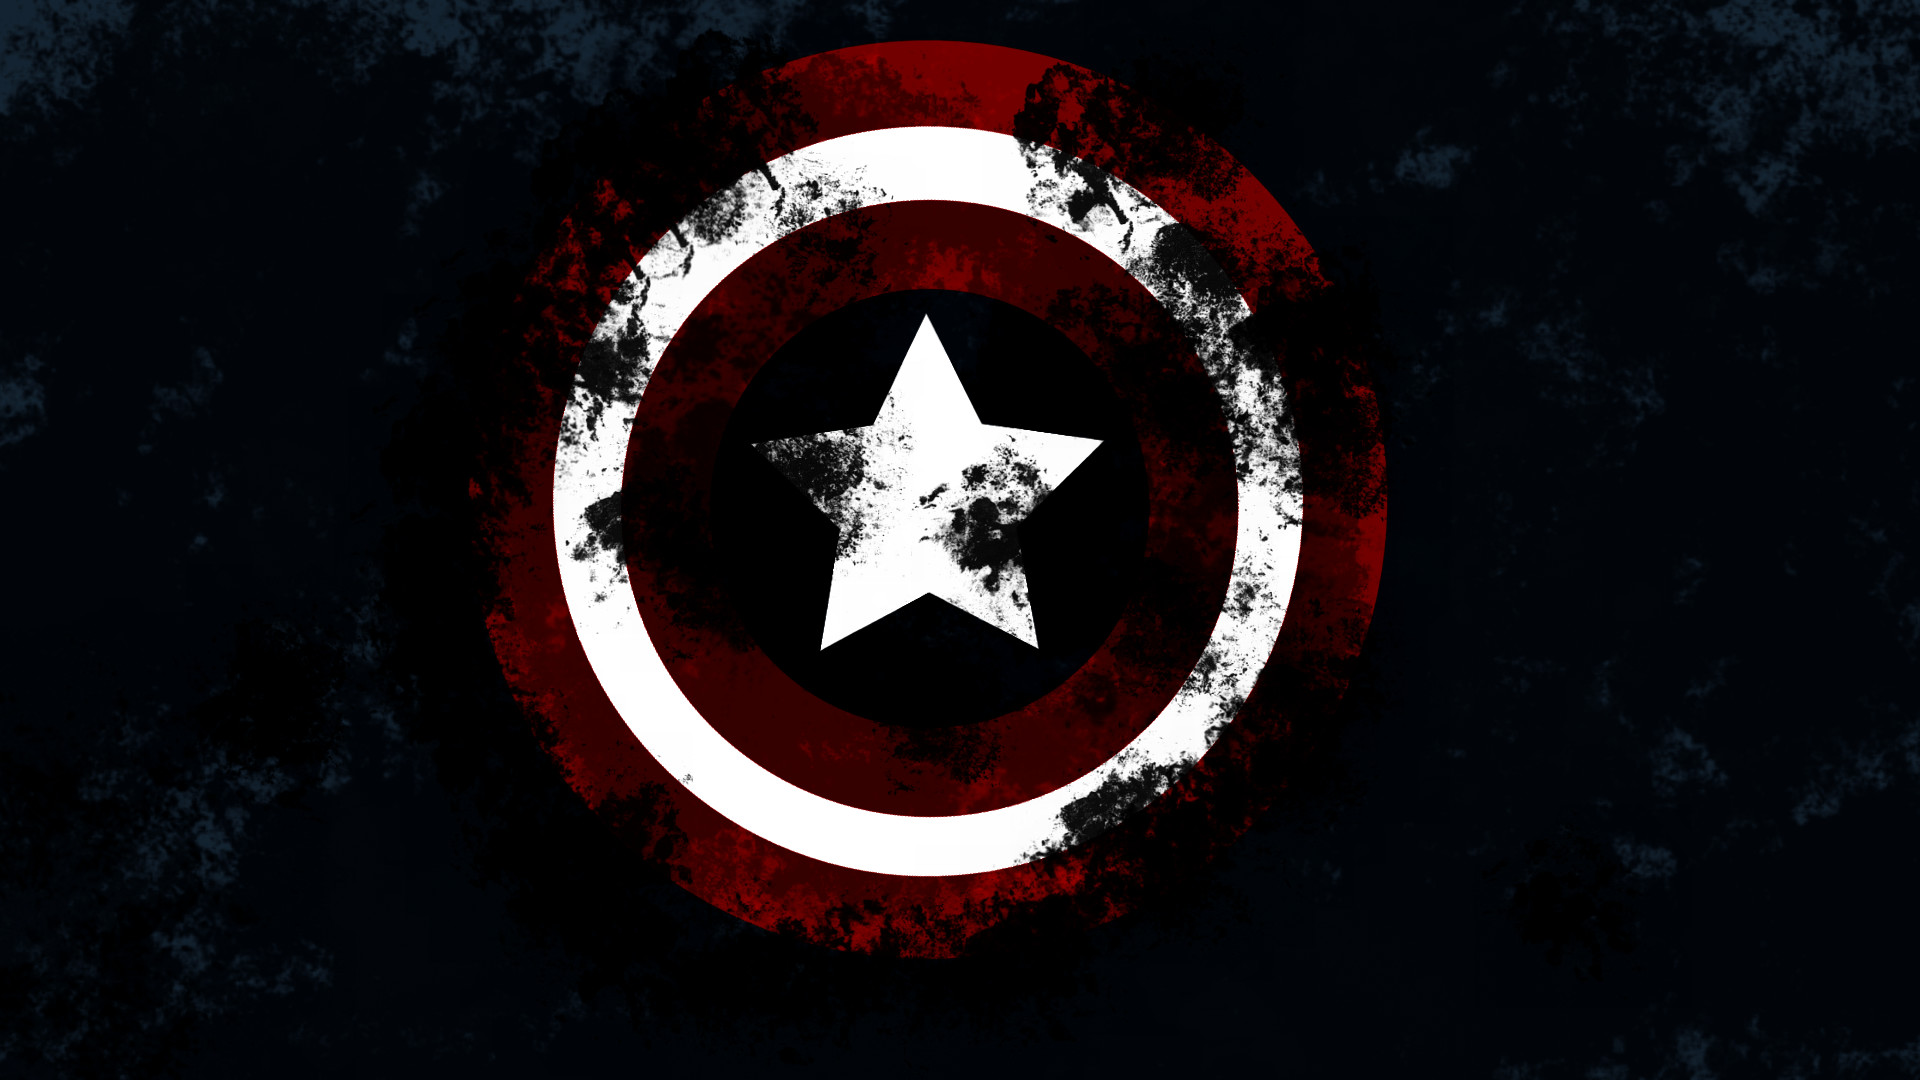 1920x1080 Captain America Shield Wallpaper HD | HD Wallpapers, Backgrounds .